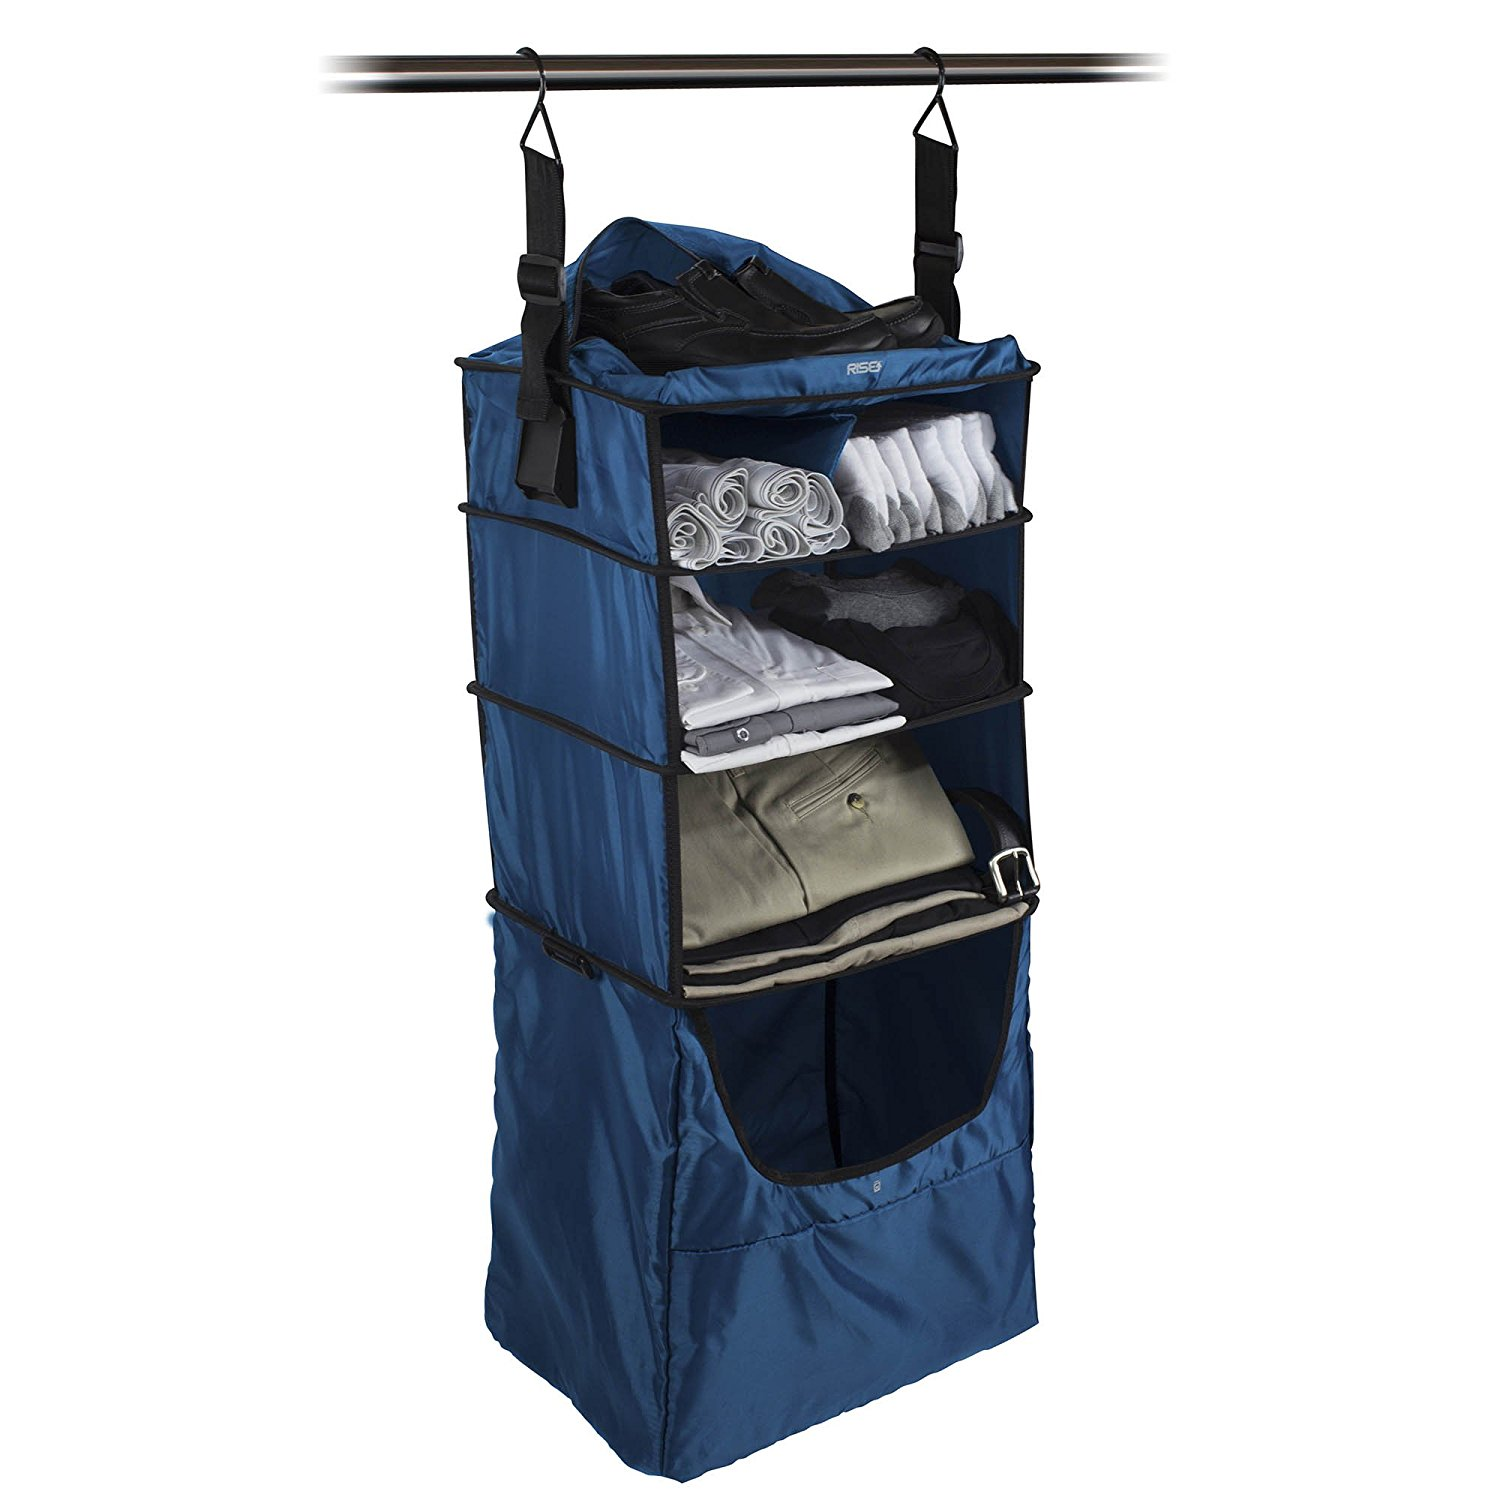 Normally $60, this portable luggage insert is 33 percent off (Photo via Amazon)